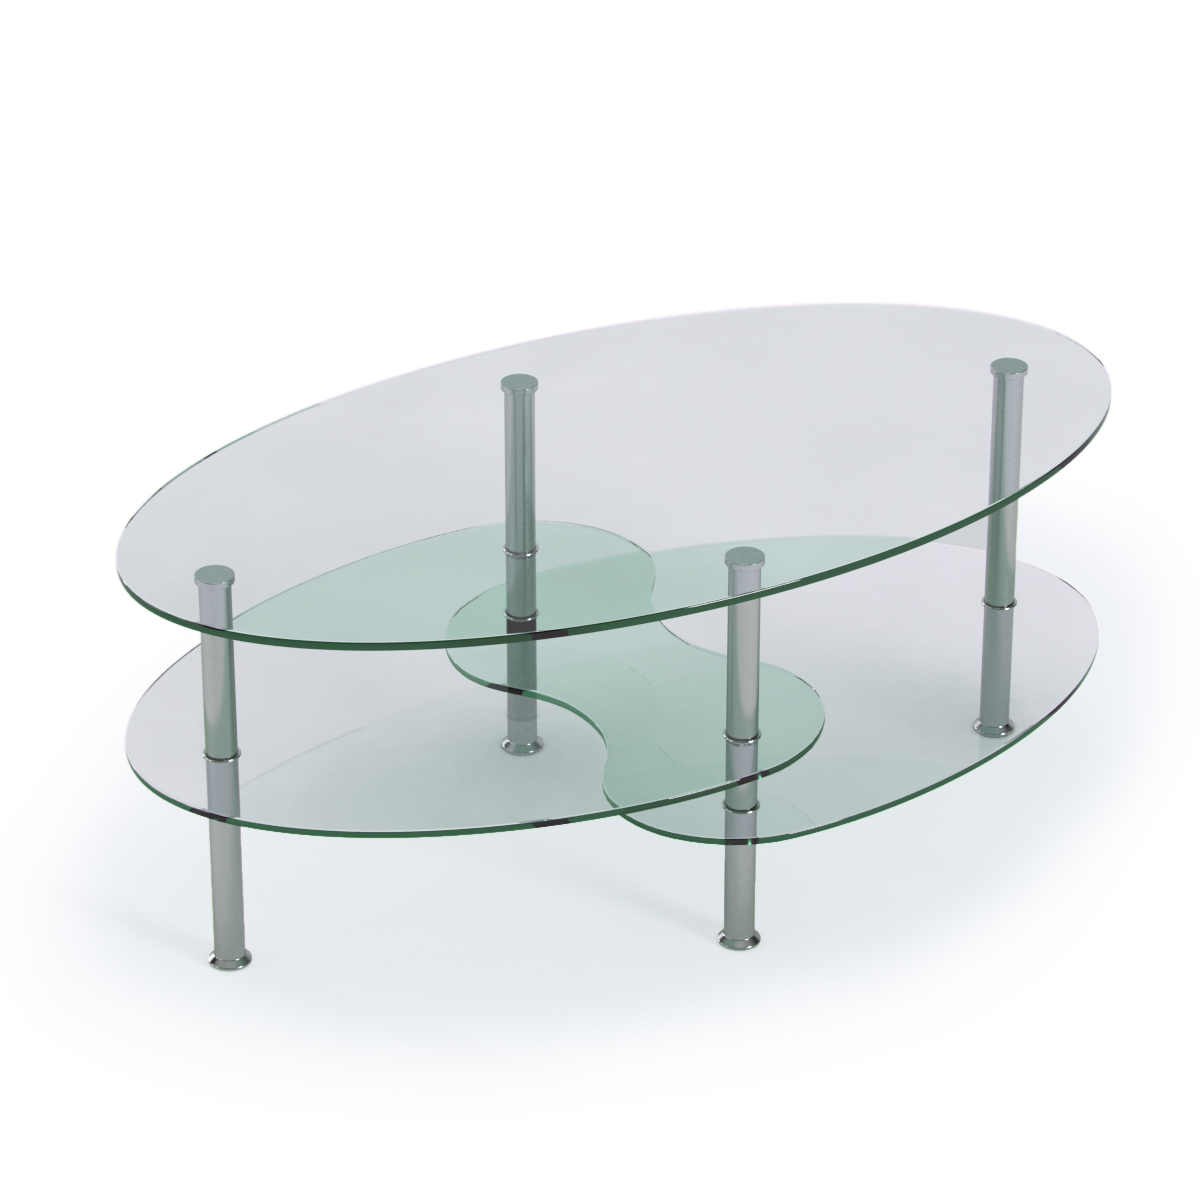 Ashley Glass Coffee Table.Ashley 38 Inch Oval Two Tier Clear Glass Coffee Table